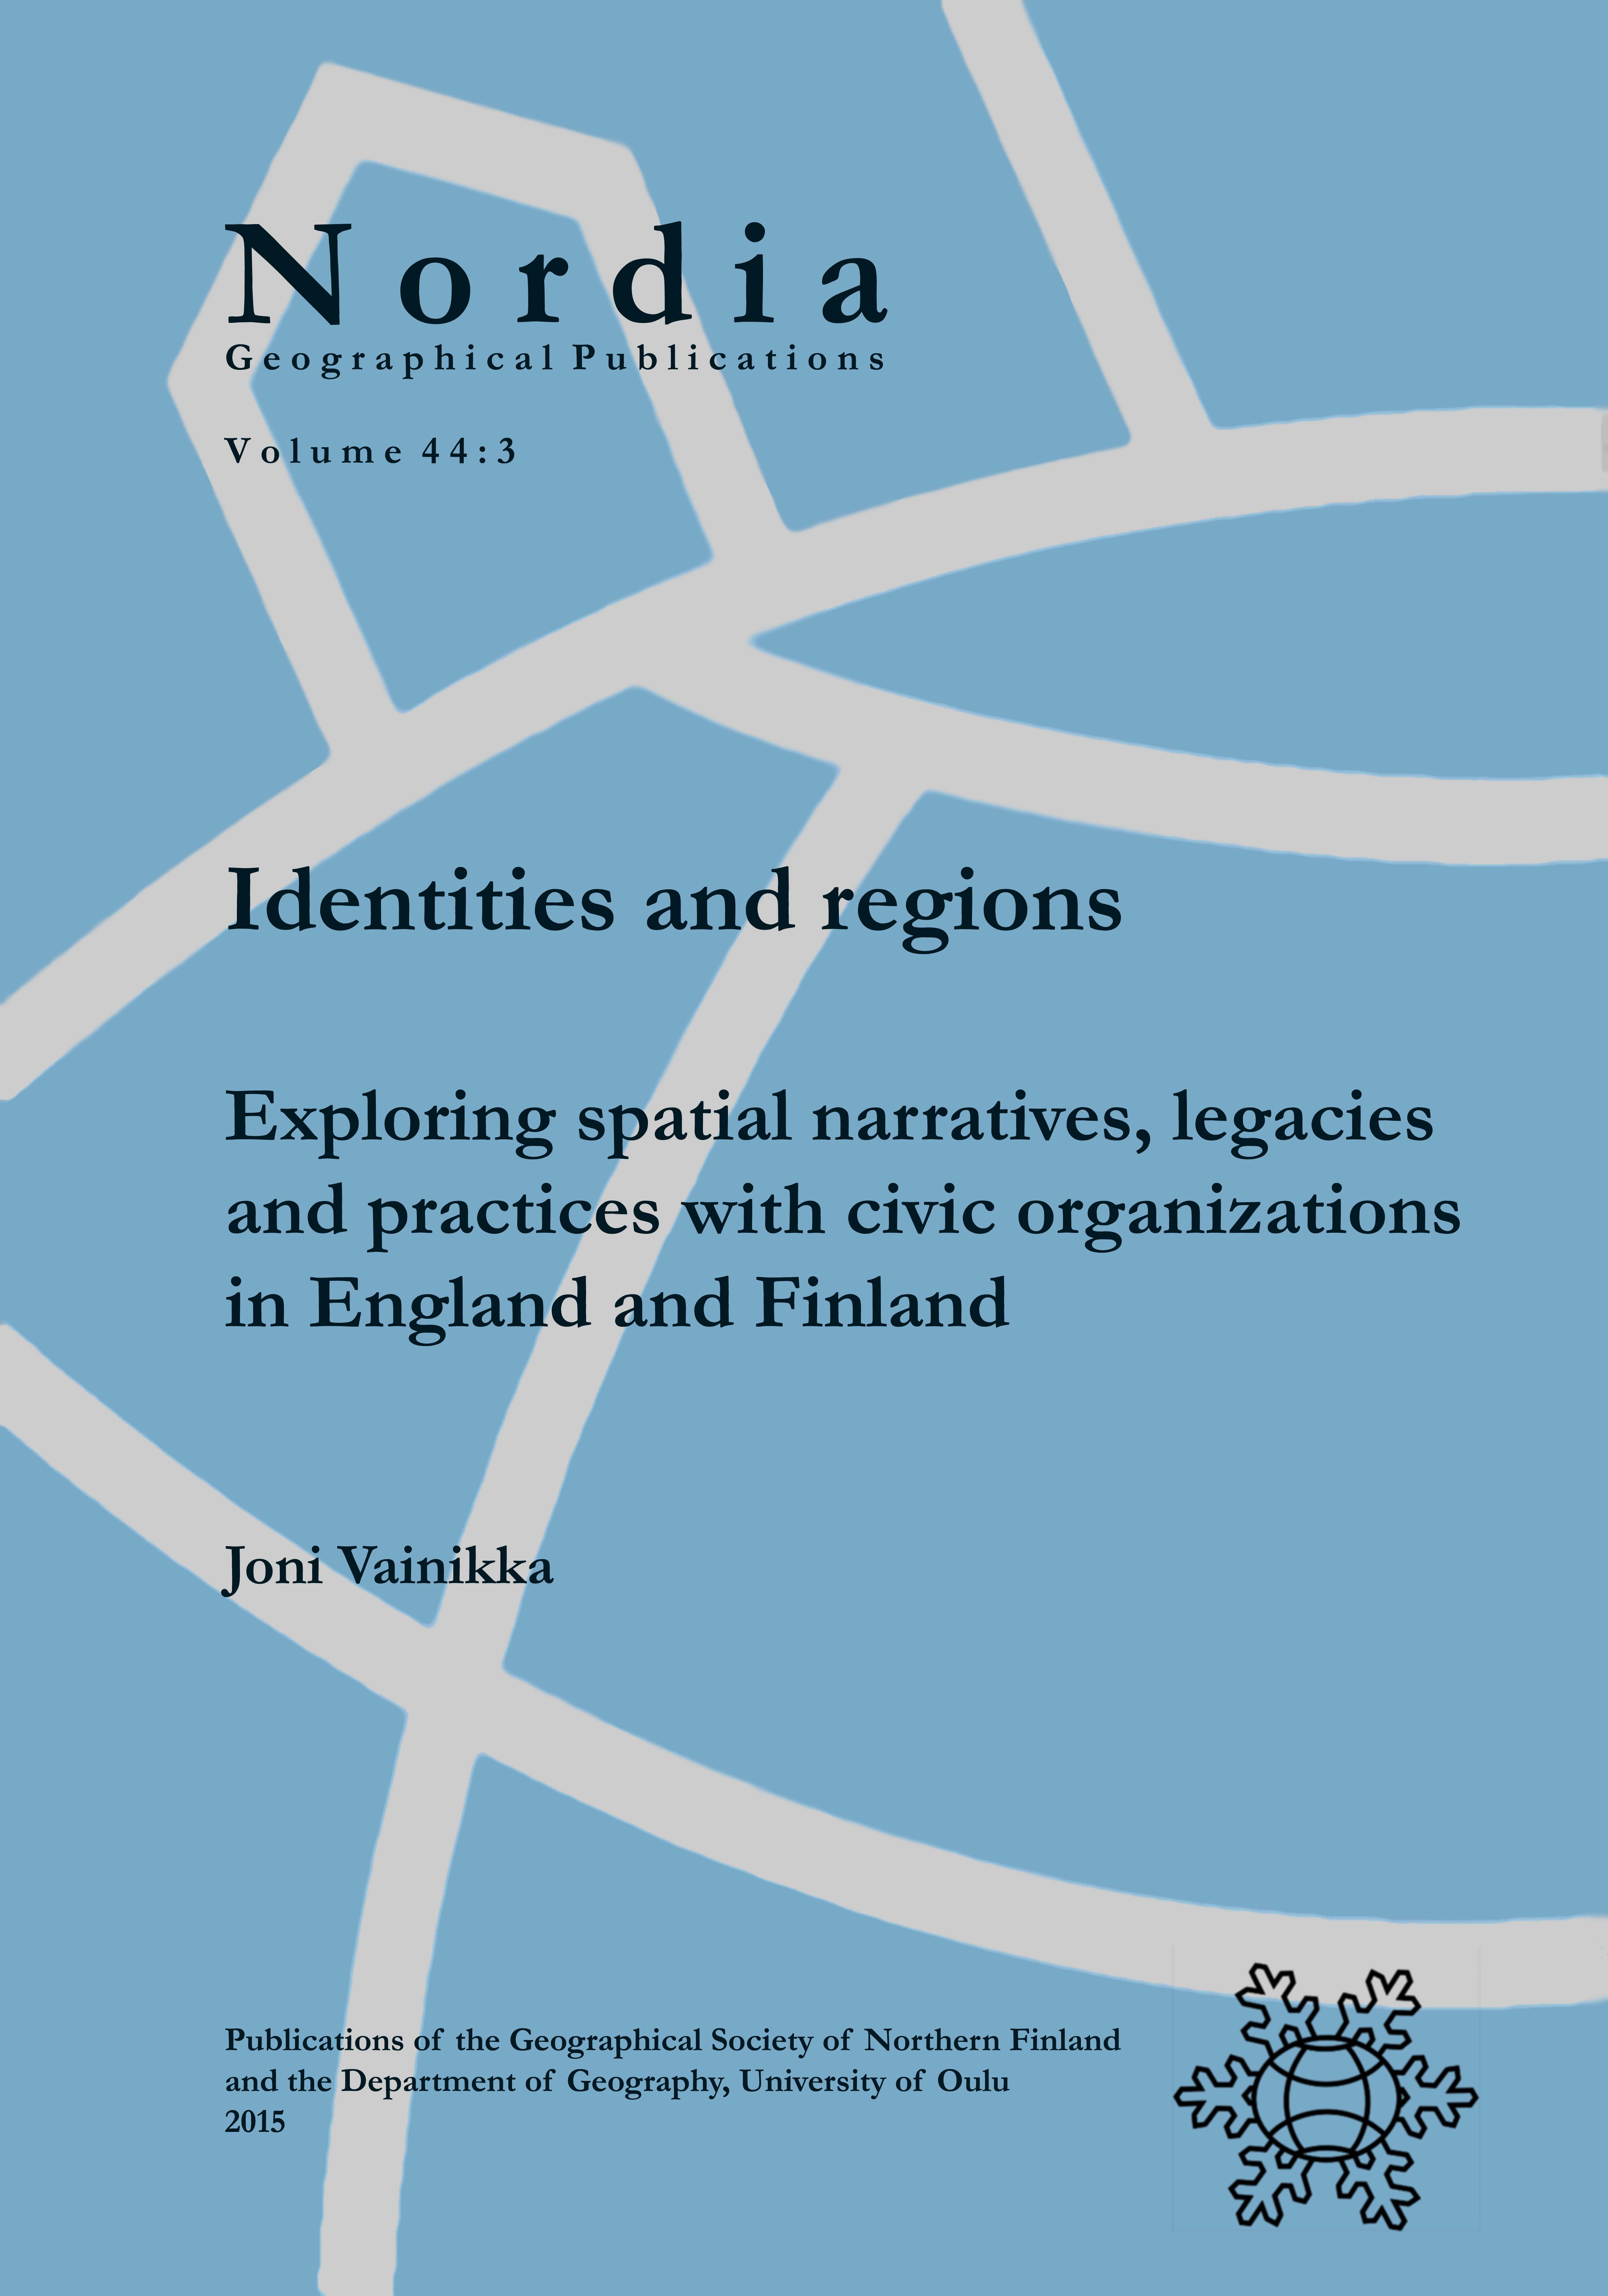 Vainikka, Joni (2015) Identities and regions: Exploring spatial narratives, legacies and practices with civic organizations in England and Finland. Nordia Geographical Publications. 44:3, 1-172.